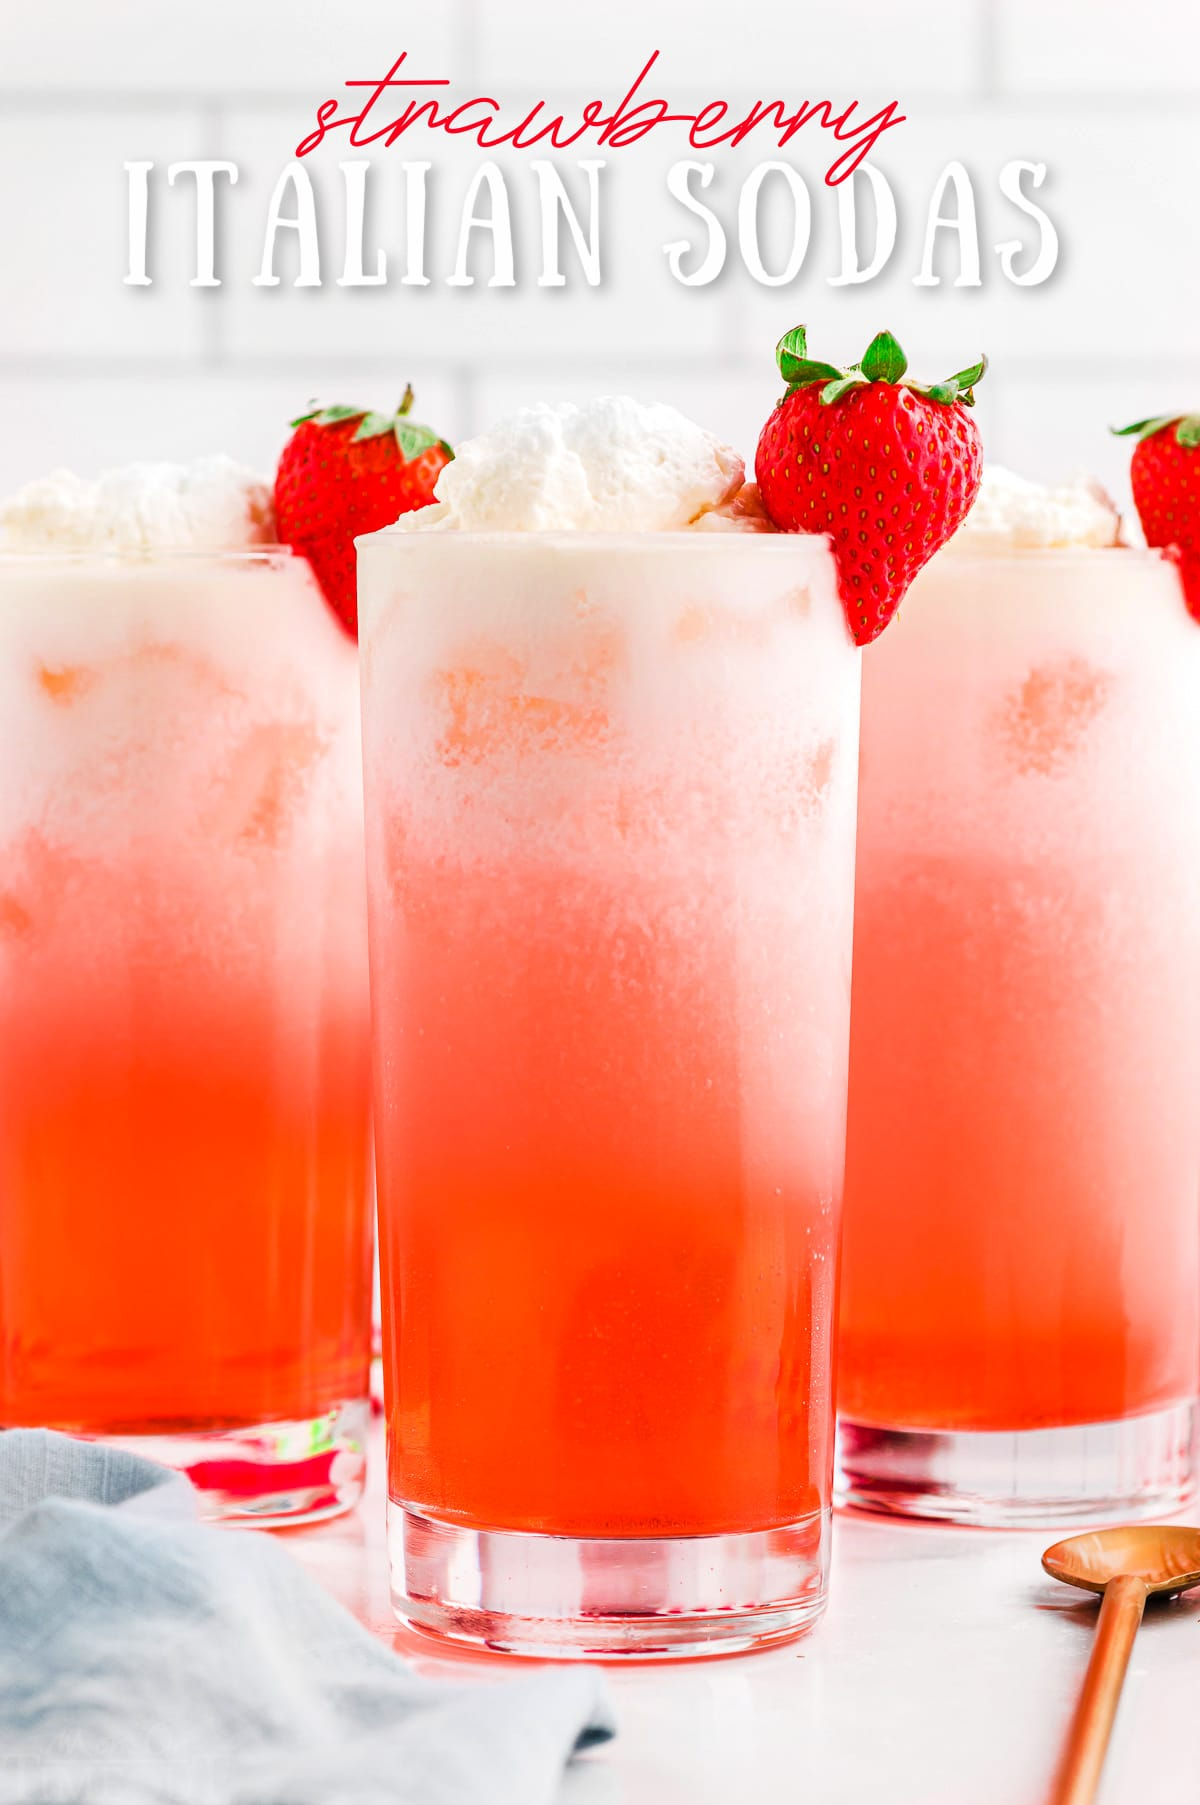 strawberry italian sodas in tall glasses garnished with whipped cream and fresh strawberries. title overlay at top of image.